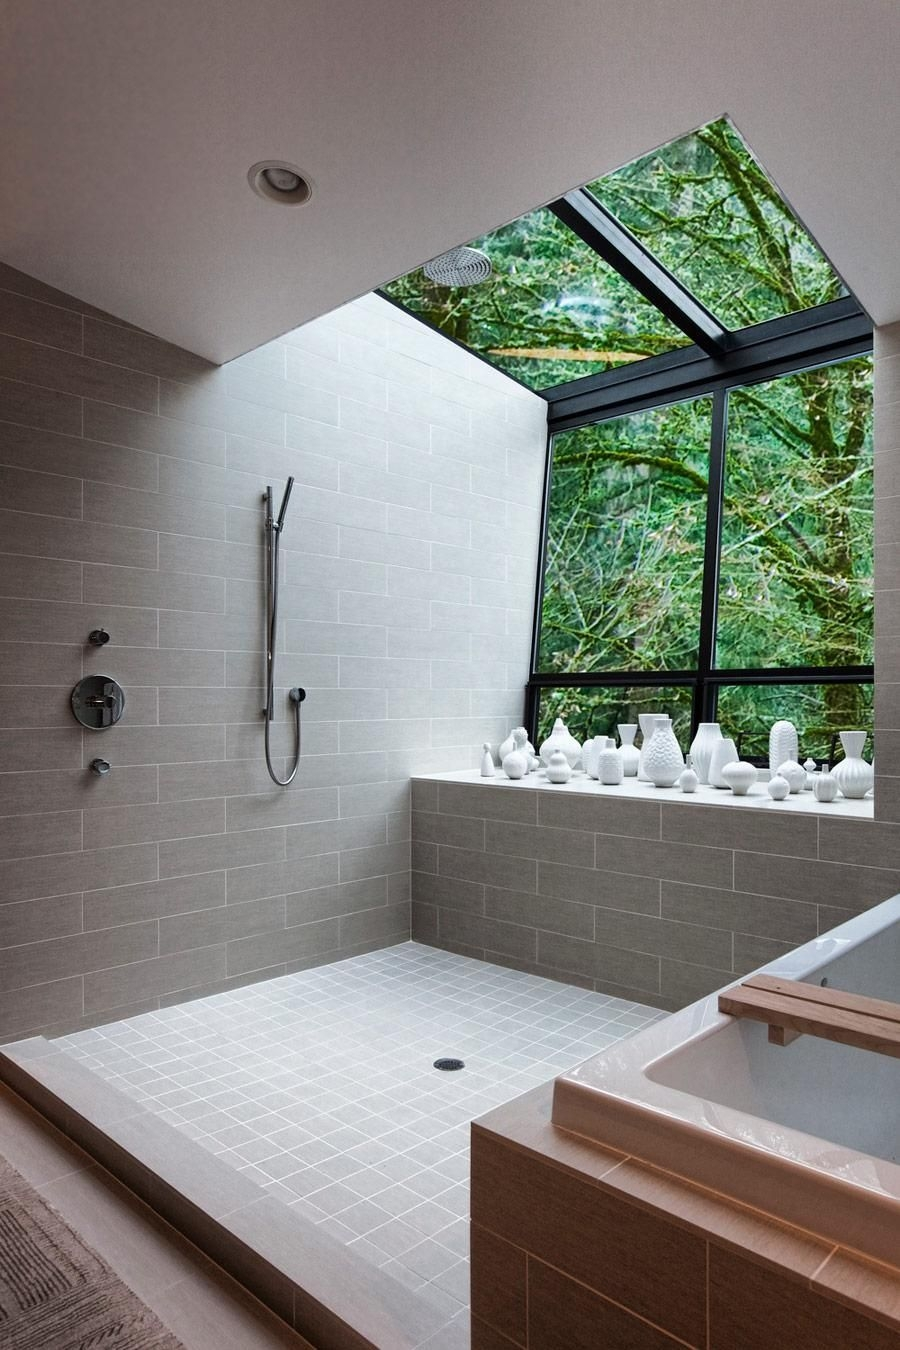 Contemporary Bath And Shower With An Amazing View Of The Outdoors In This Home Located I